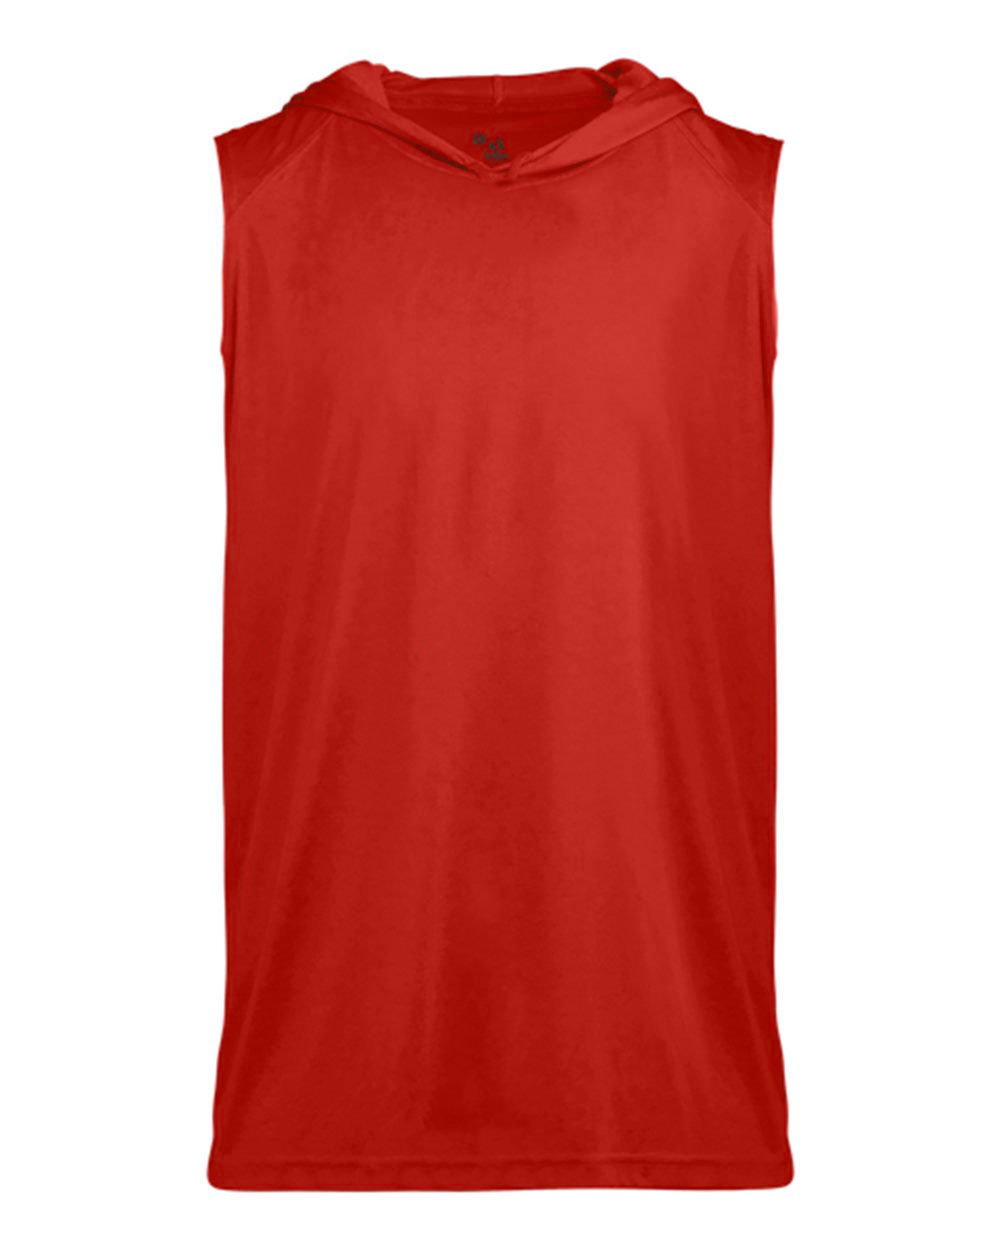 B-Core Youth Sleeveless Hood Tee